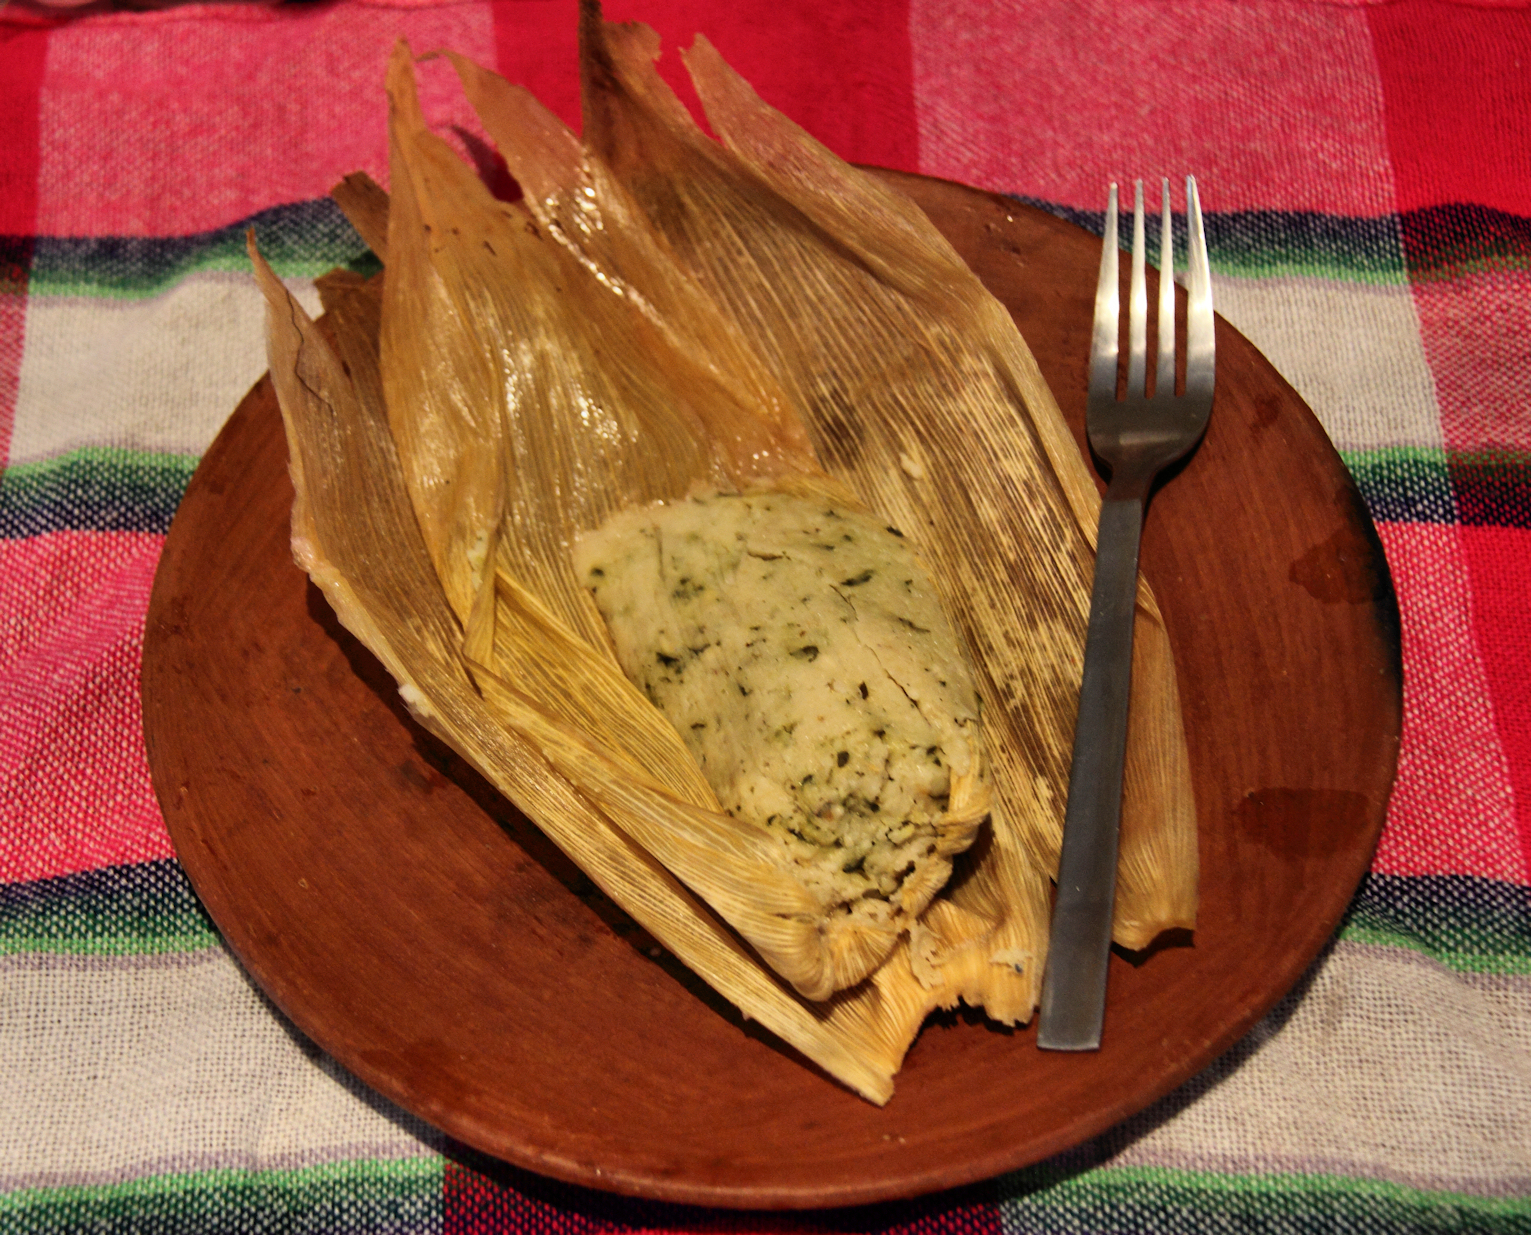 Chipilin Leaves http://shelf3d.com/i/tamale